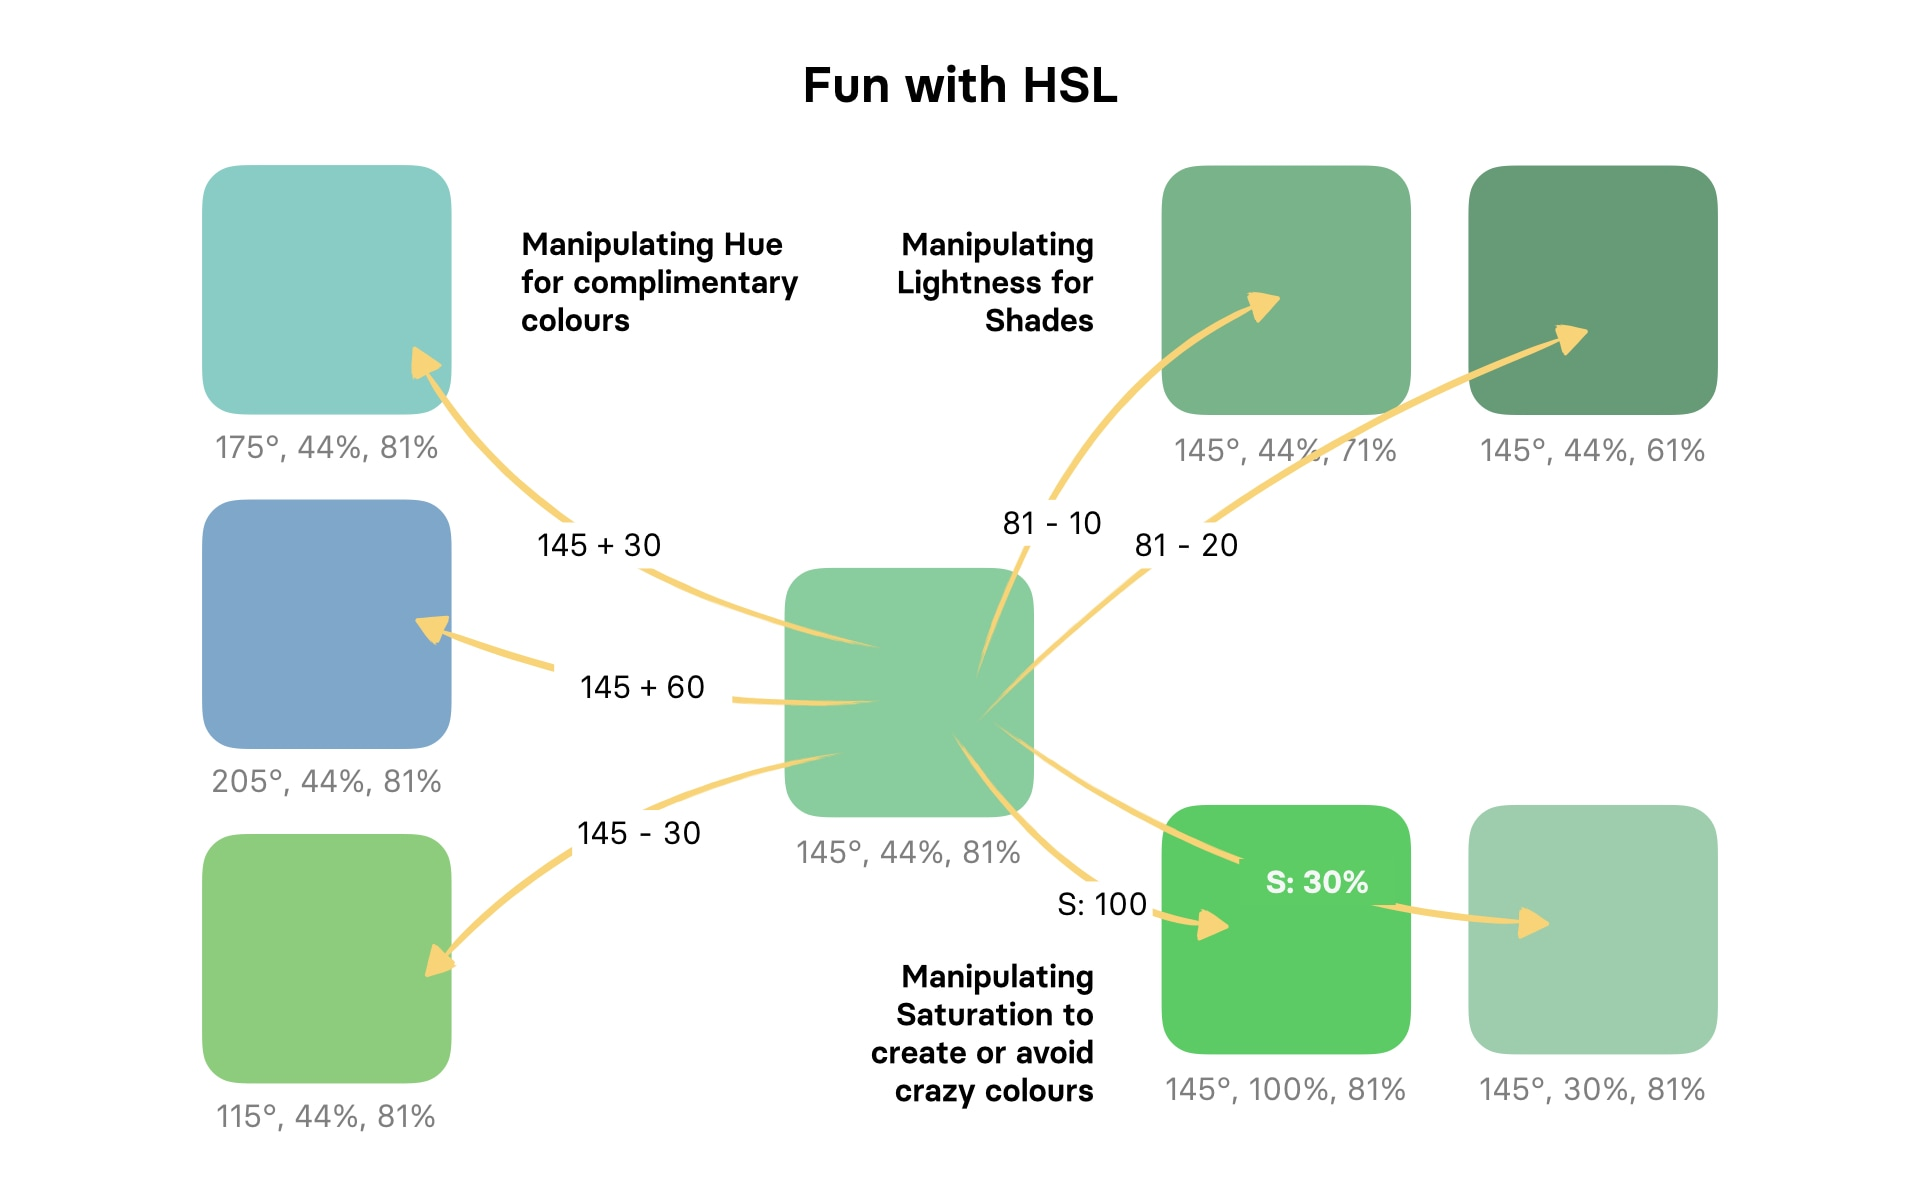 Fun with HSL